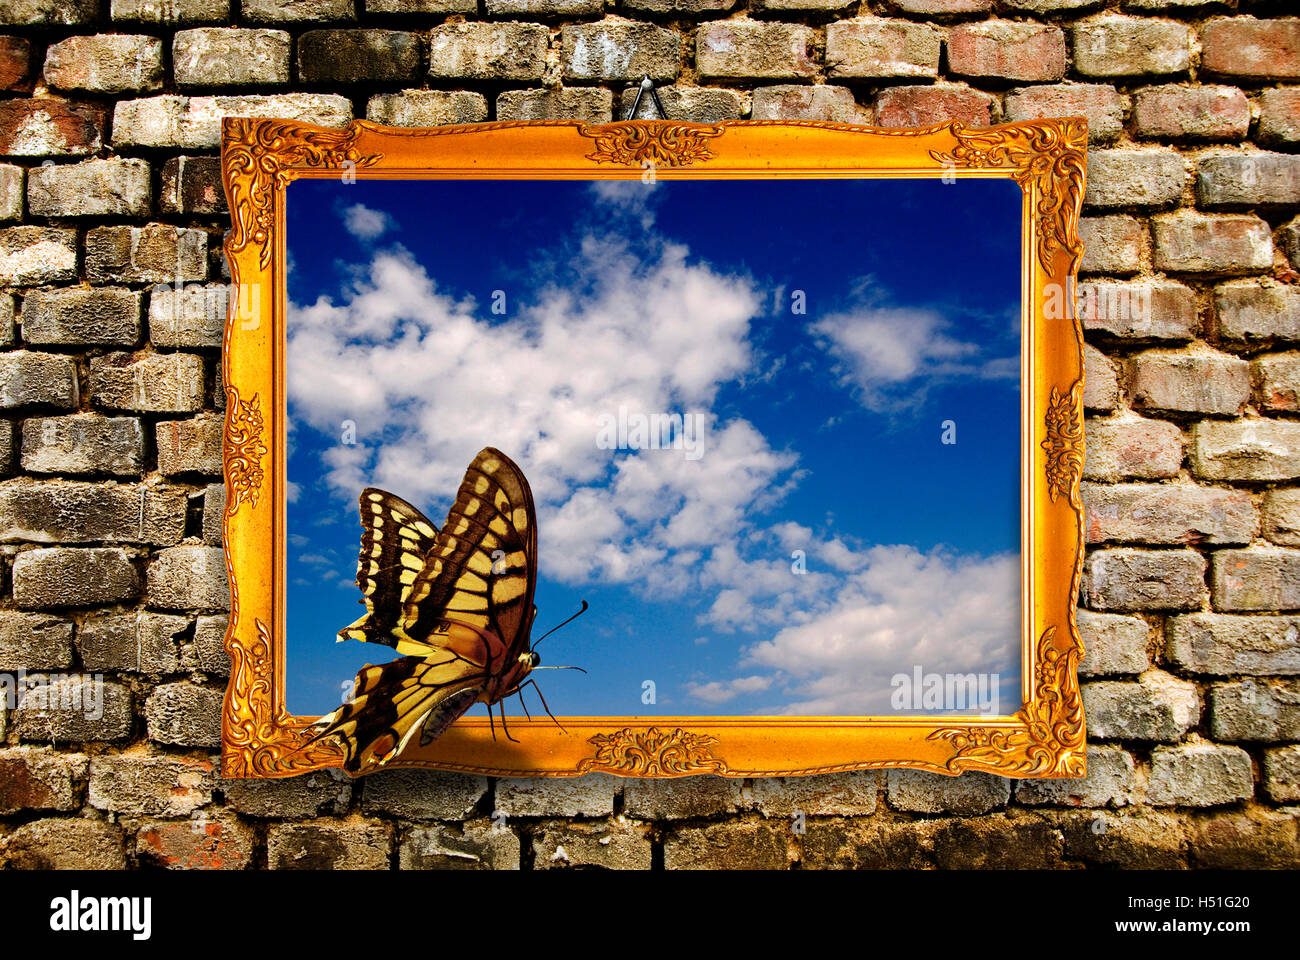 Butterfly Surreal Stockfotos & Butterfly Surreal Bilder - Alamy